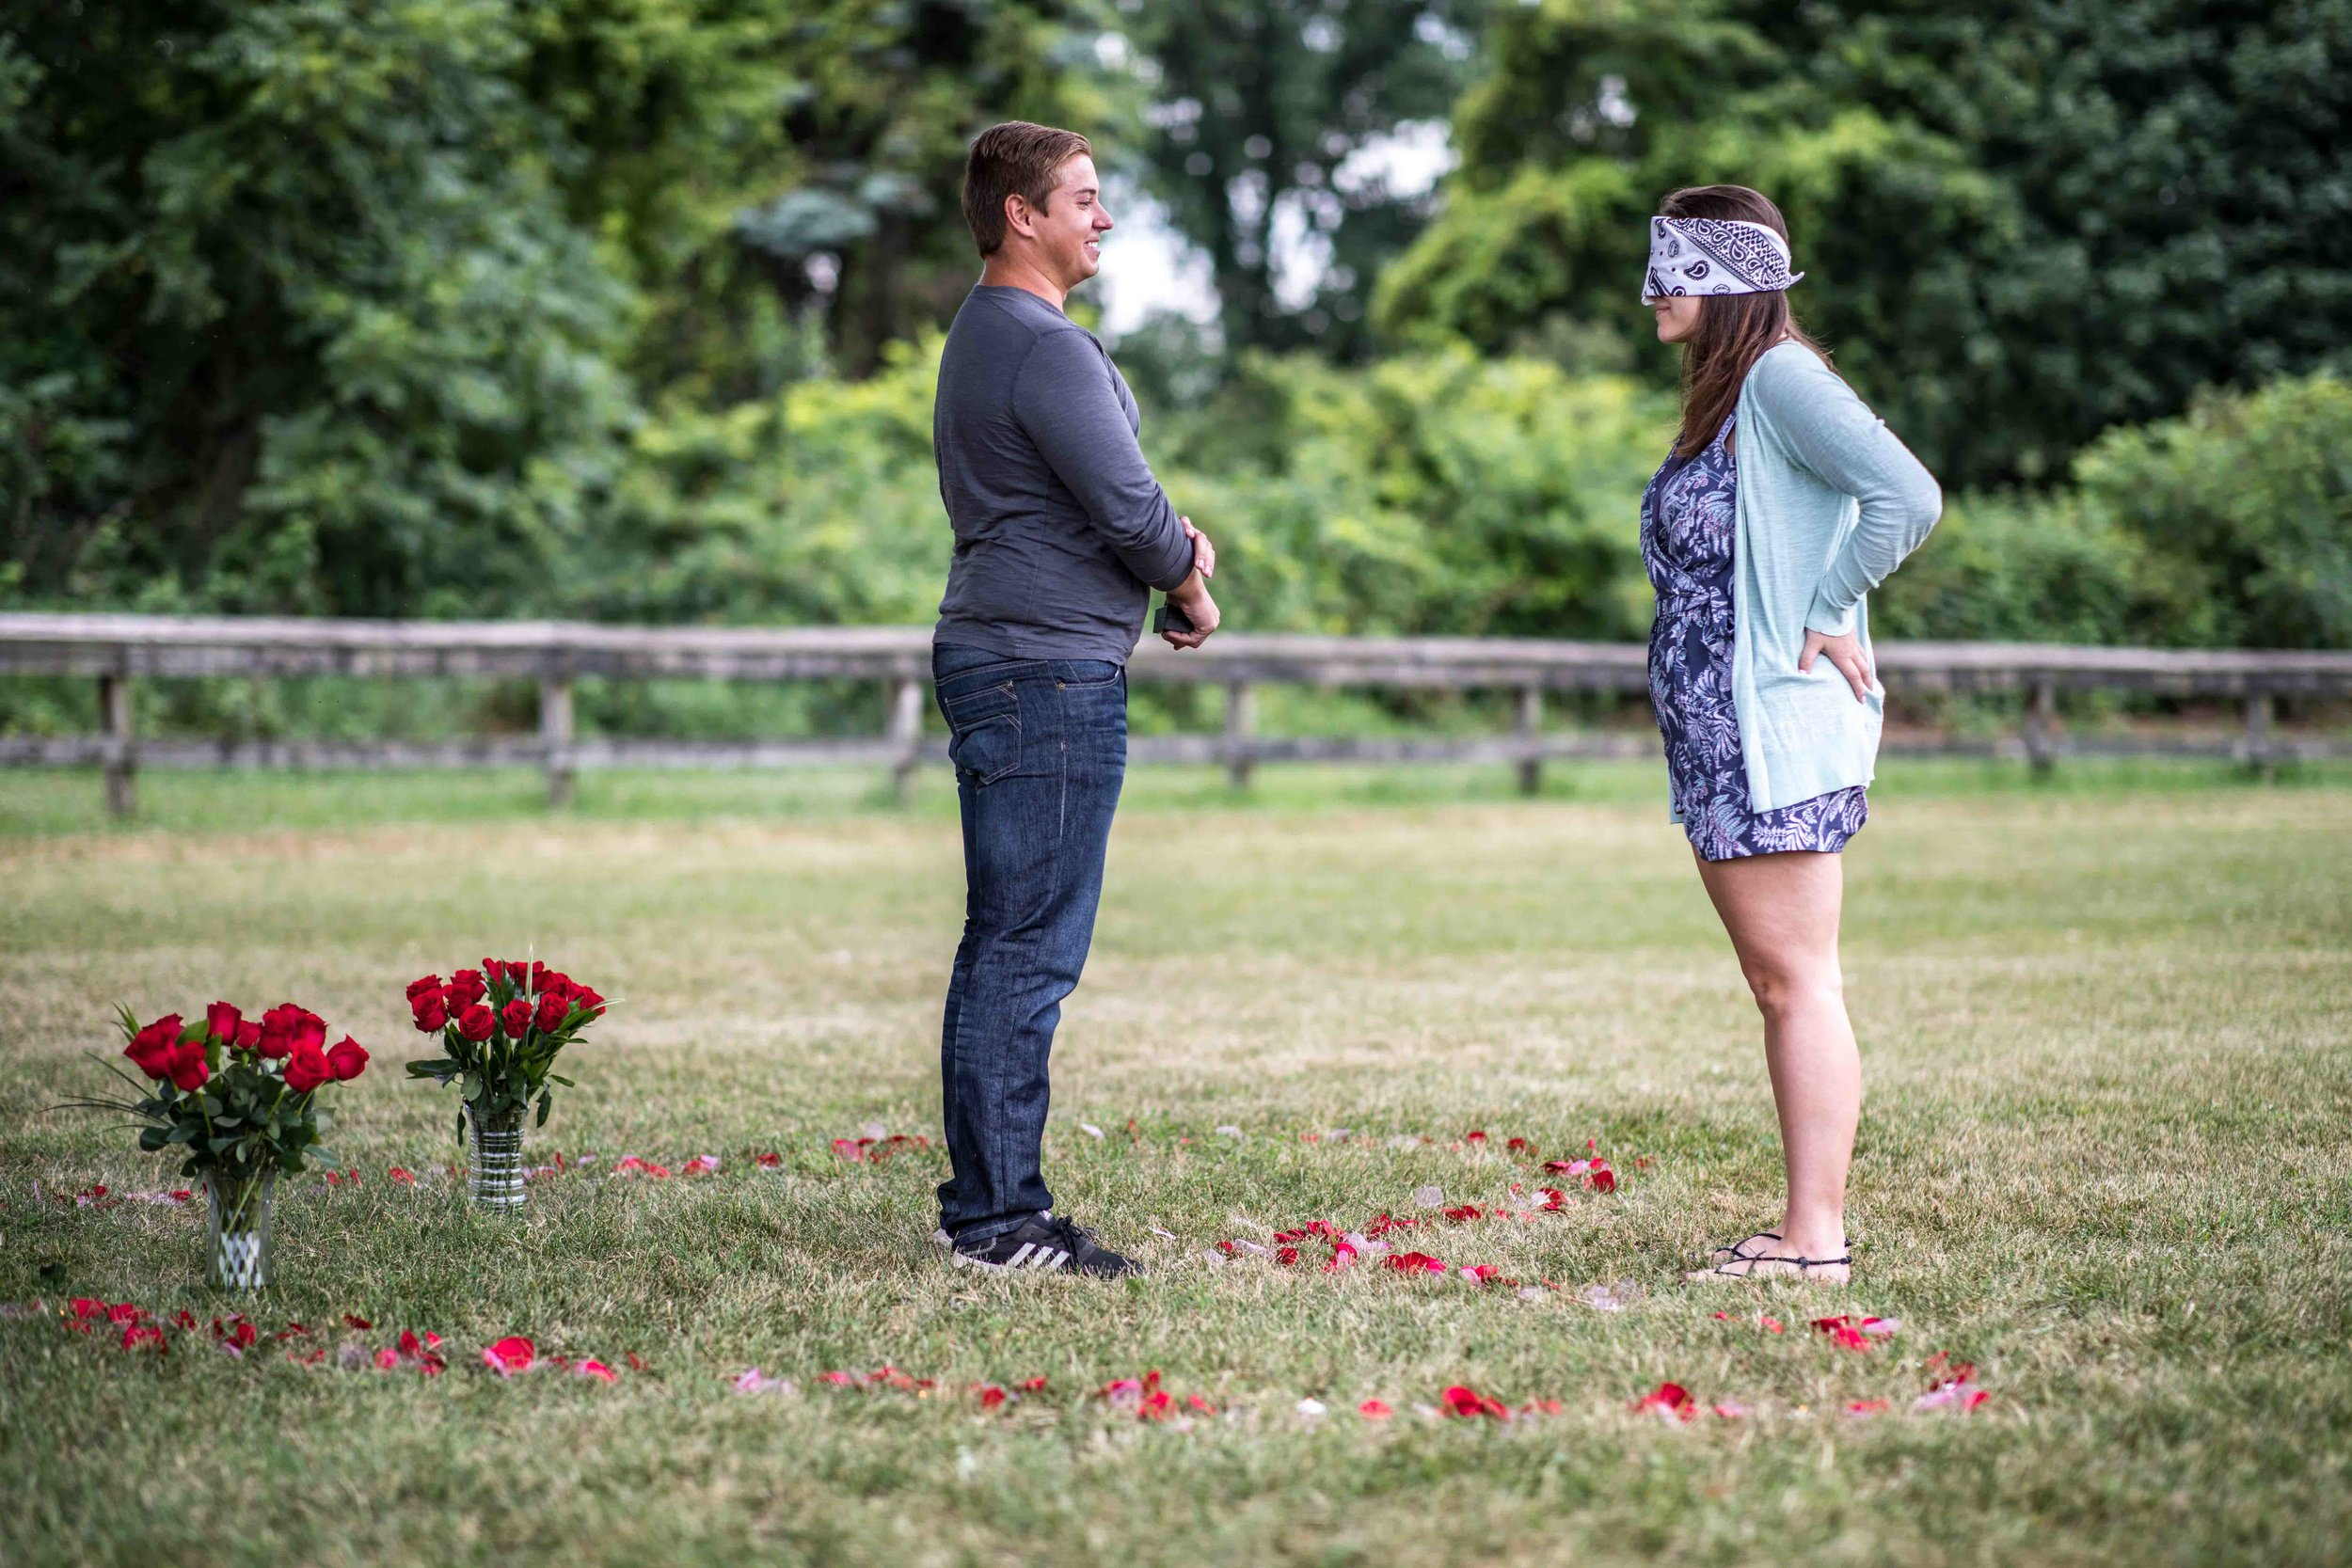 Boyfriend prepares to take a knee in front of his blindfolded girlfriend